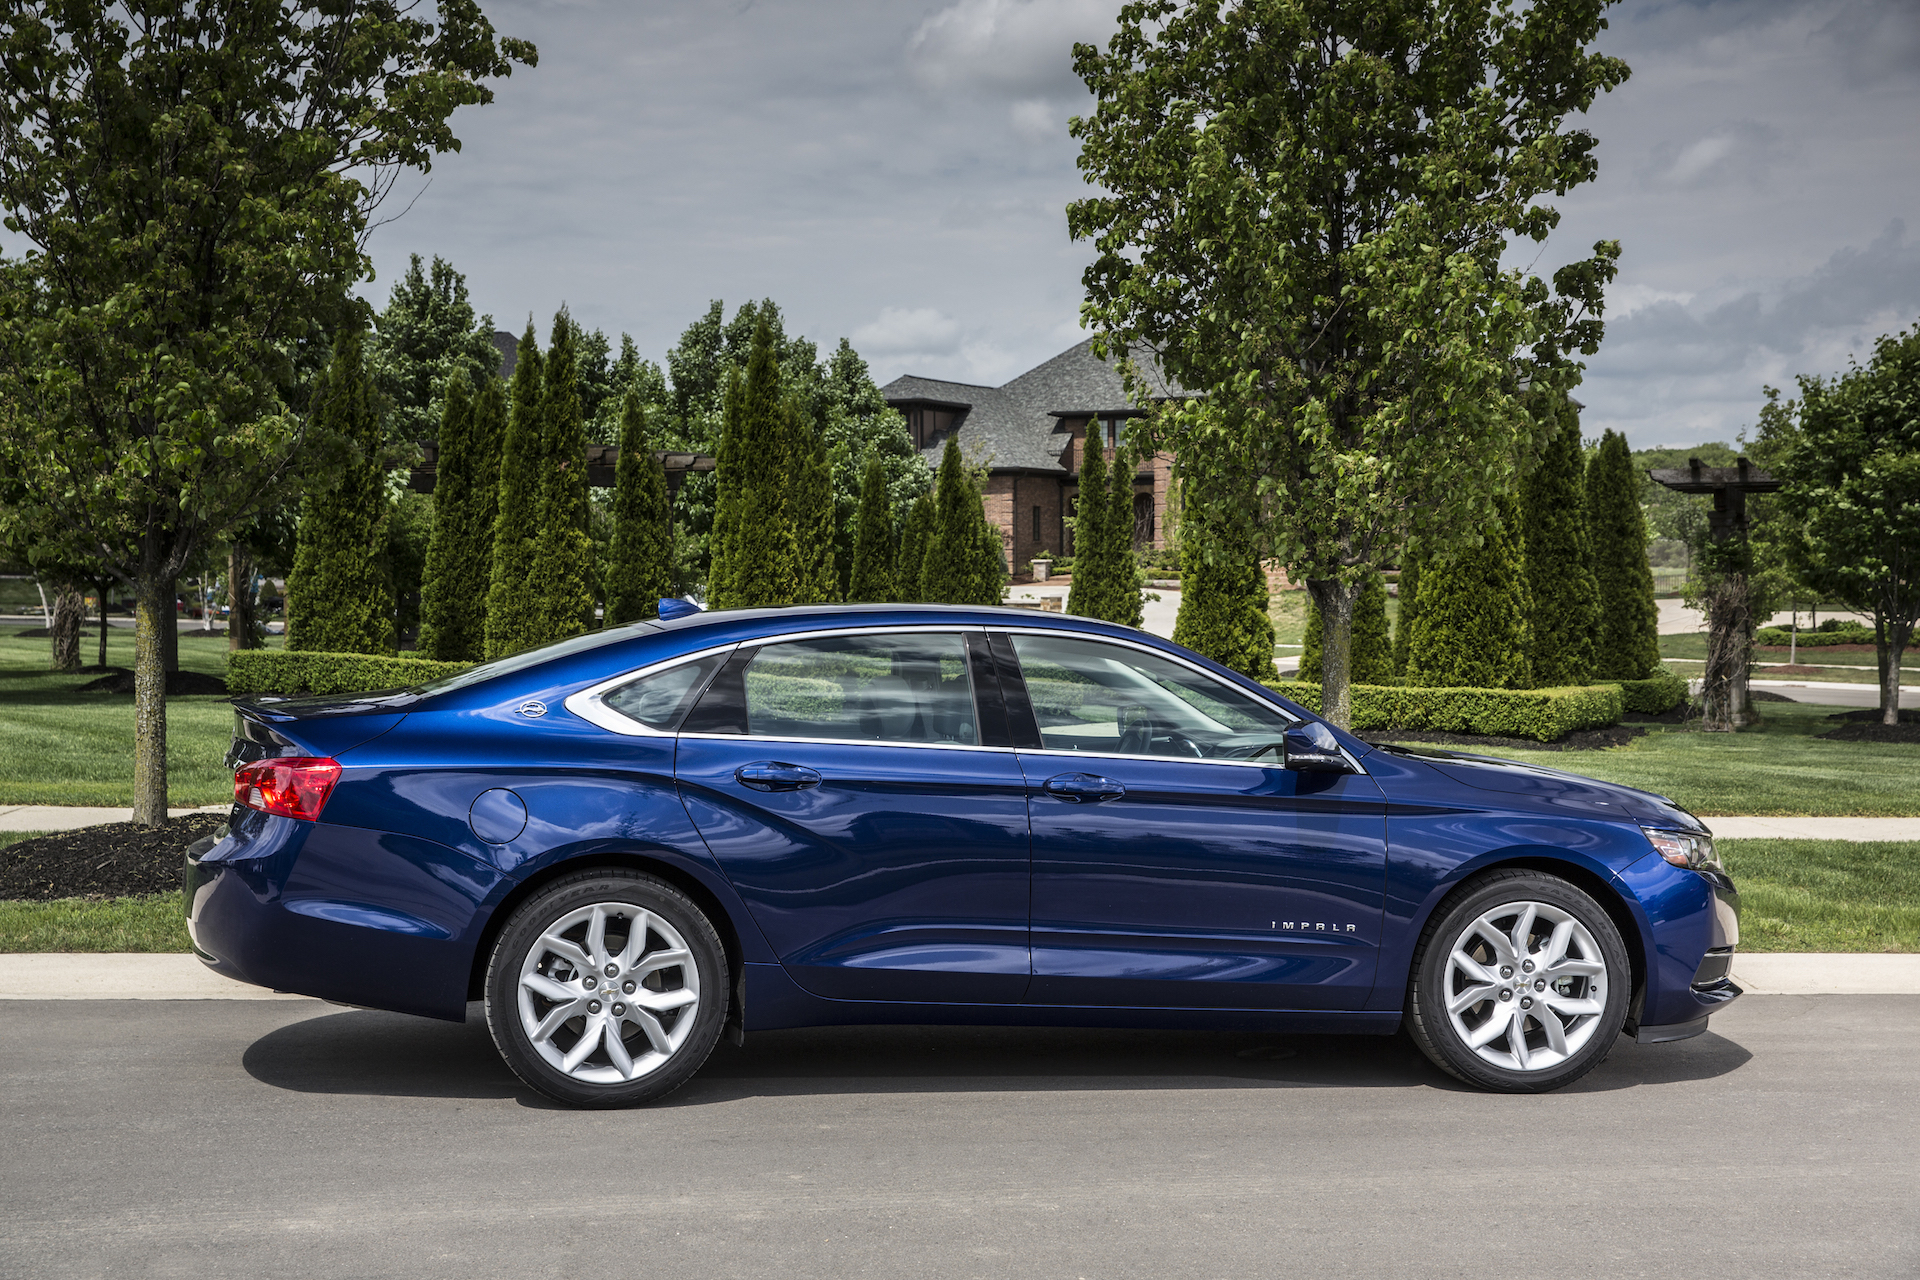 2016 Chevrolet Impala Blue Side Design